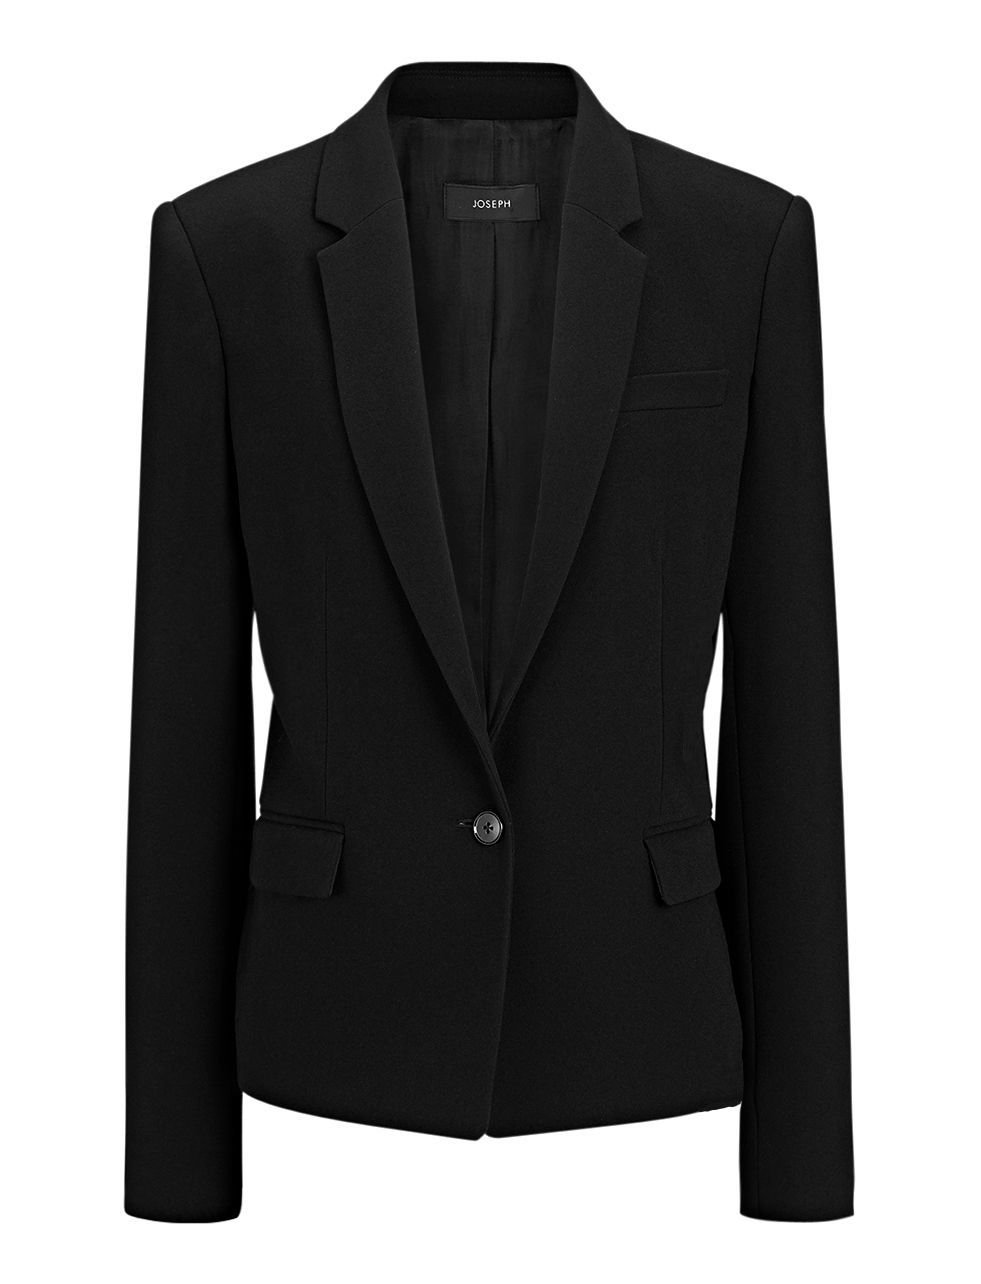 Crepe Stretch New Will Jacket In Black - pattern: plain; style: single breasted blazer; collar: standard lapel/rever collar; predominant colour: black; occasions: work, creative work; length: standard; fit: straight cut (boxy); sleeve length: long sleeve; sleeve style: standard; collar break: low/open; pattern type: fabric; texture group: woven light midweight; fibres: viscose/rayon - mix; season: a/w 2015